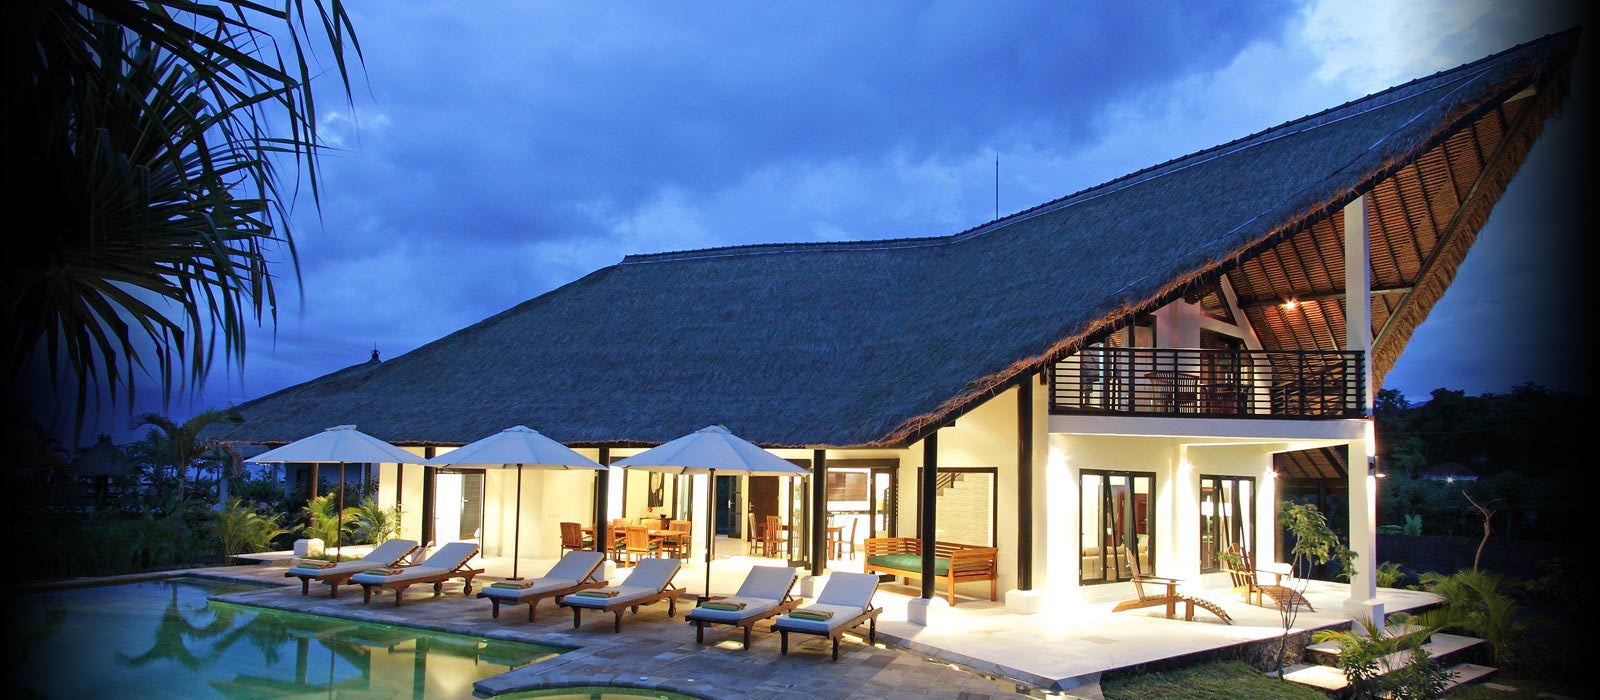 Holiday rentals homes apartments accommodation for Amazing holiday rentals